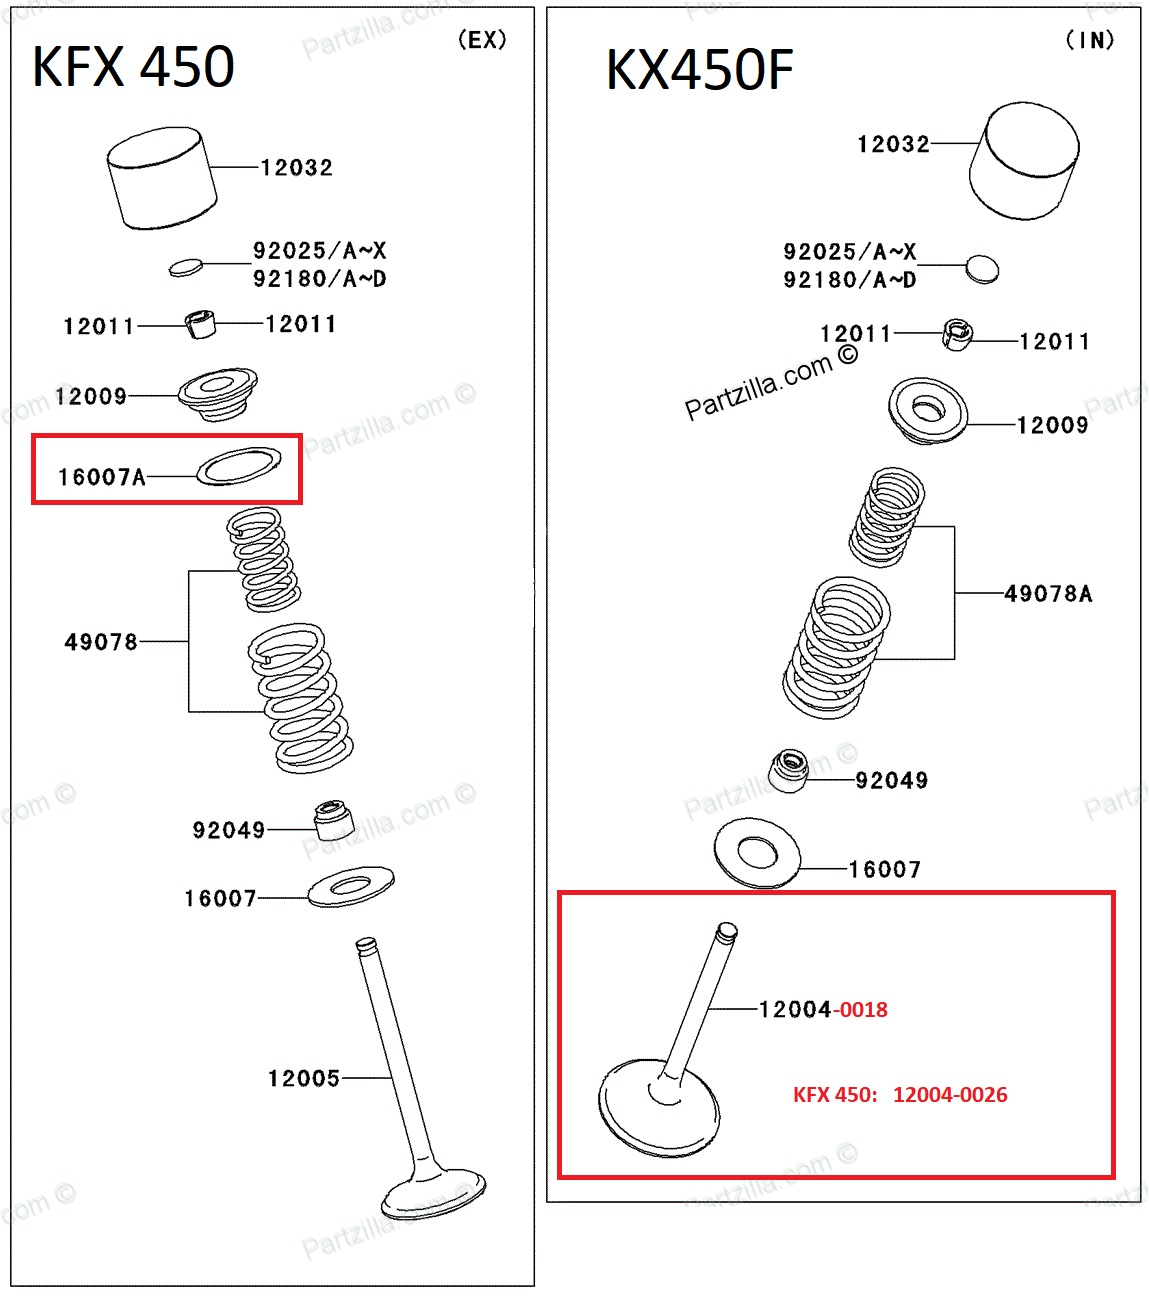 kx450 intake valves on kfx450 - kawasaki kfx450 forum ... 08 chevy silverado wiring diagram 08 kawasaki kfx450r wiring diagram